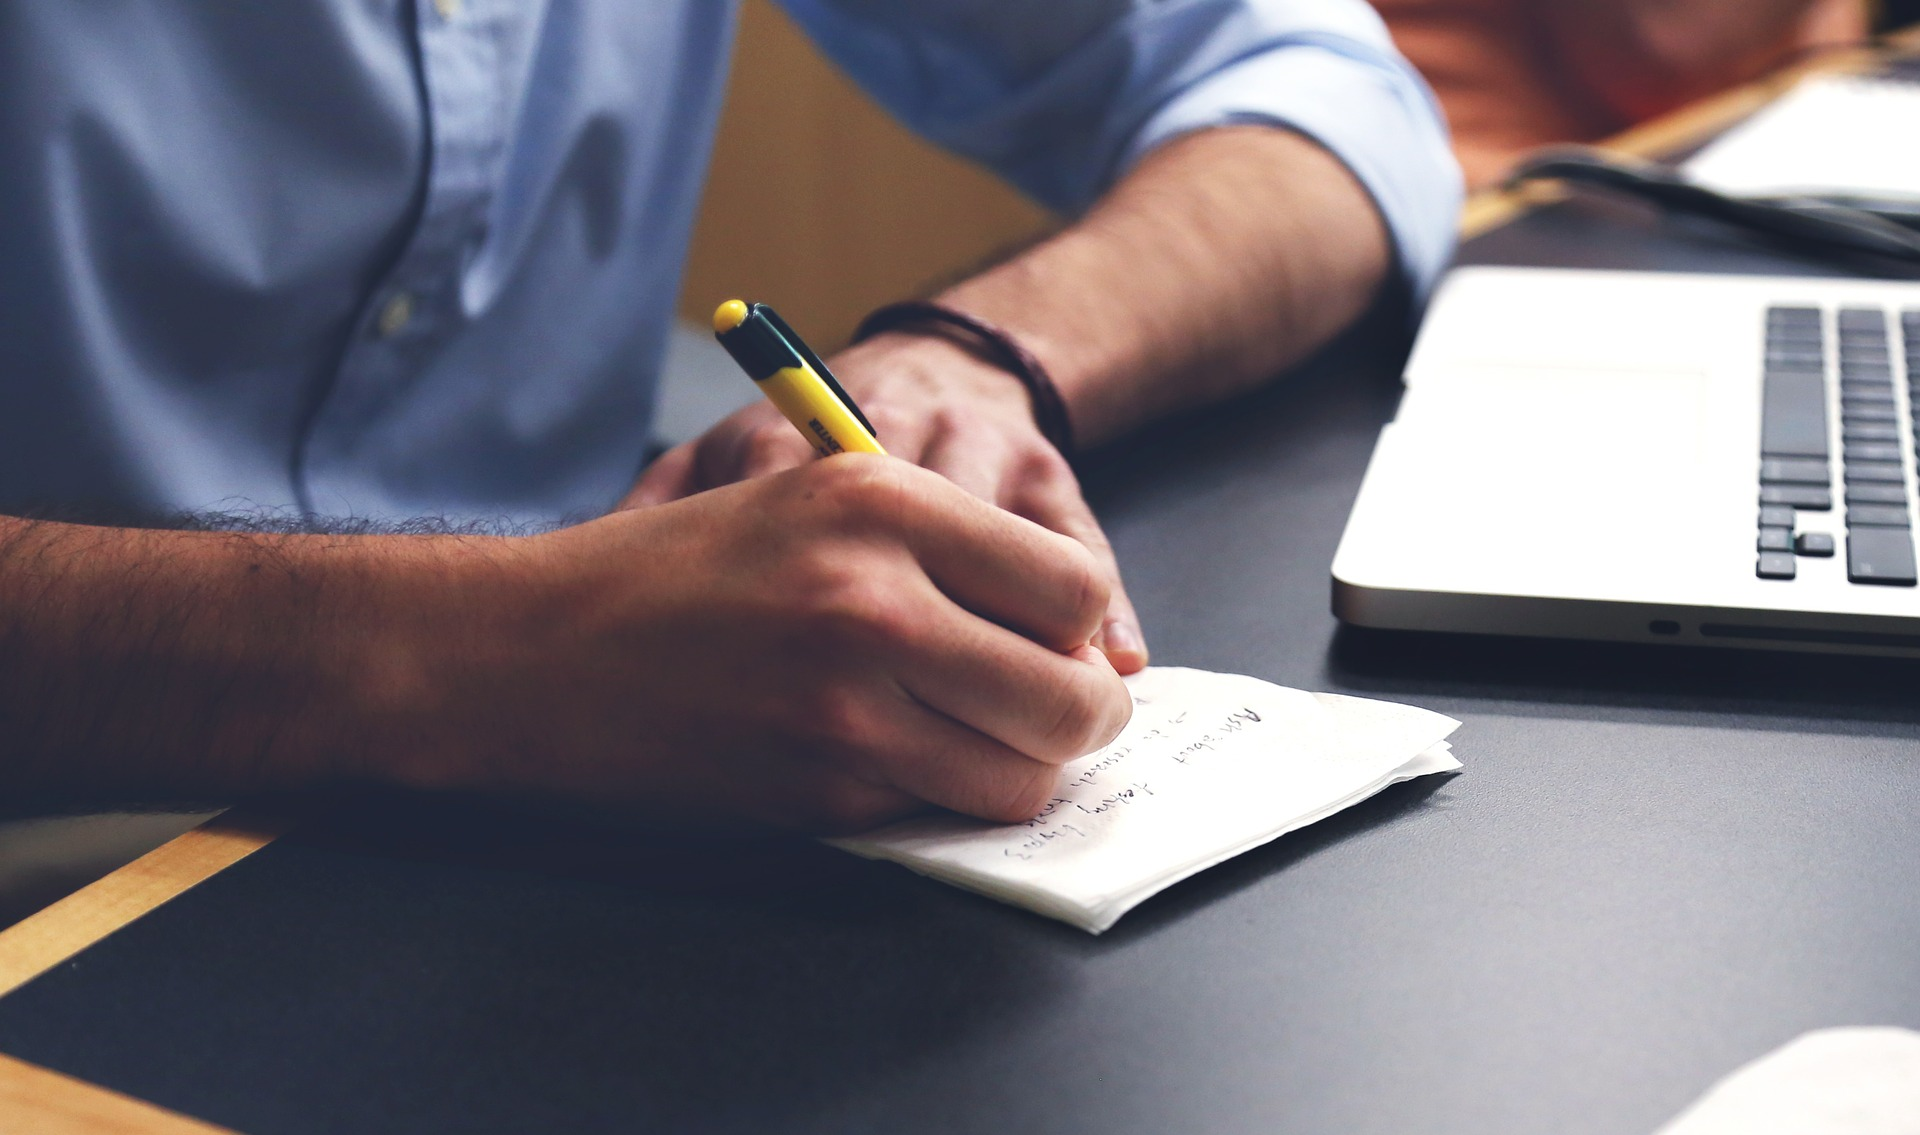 A man taking notes on paper on a desk.